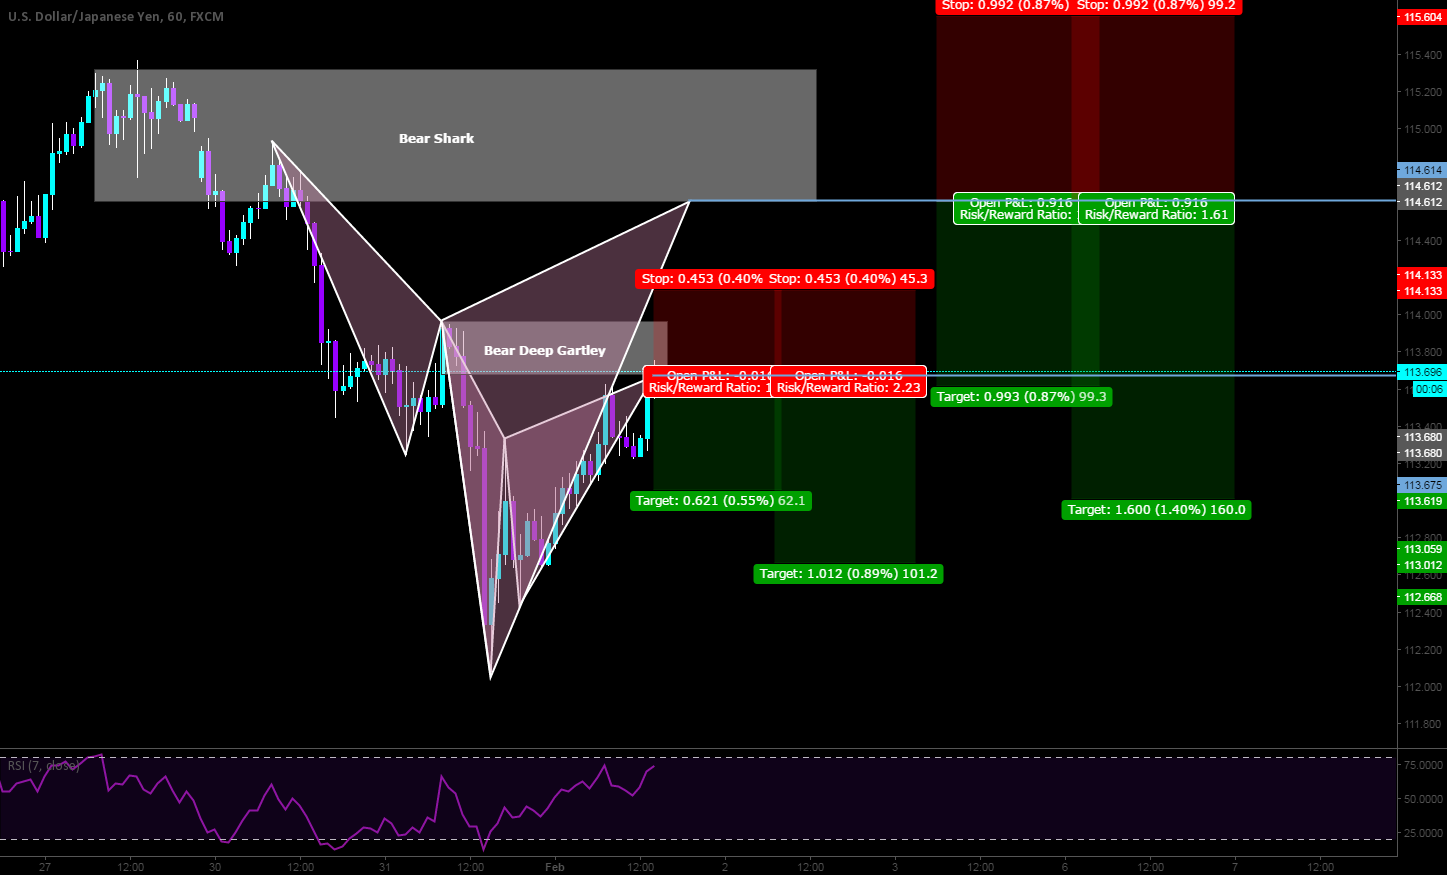 Two advance patterns to short the market.